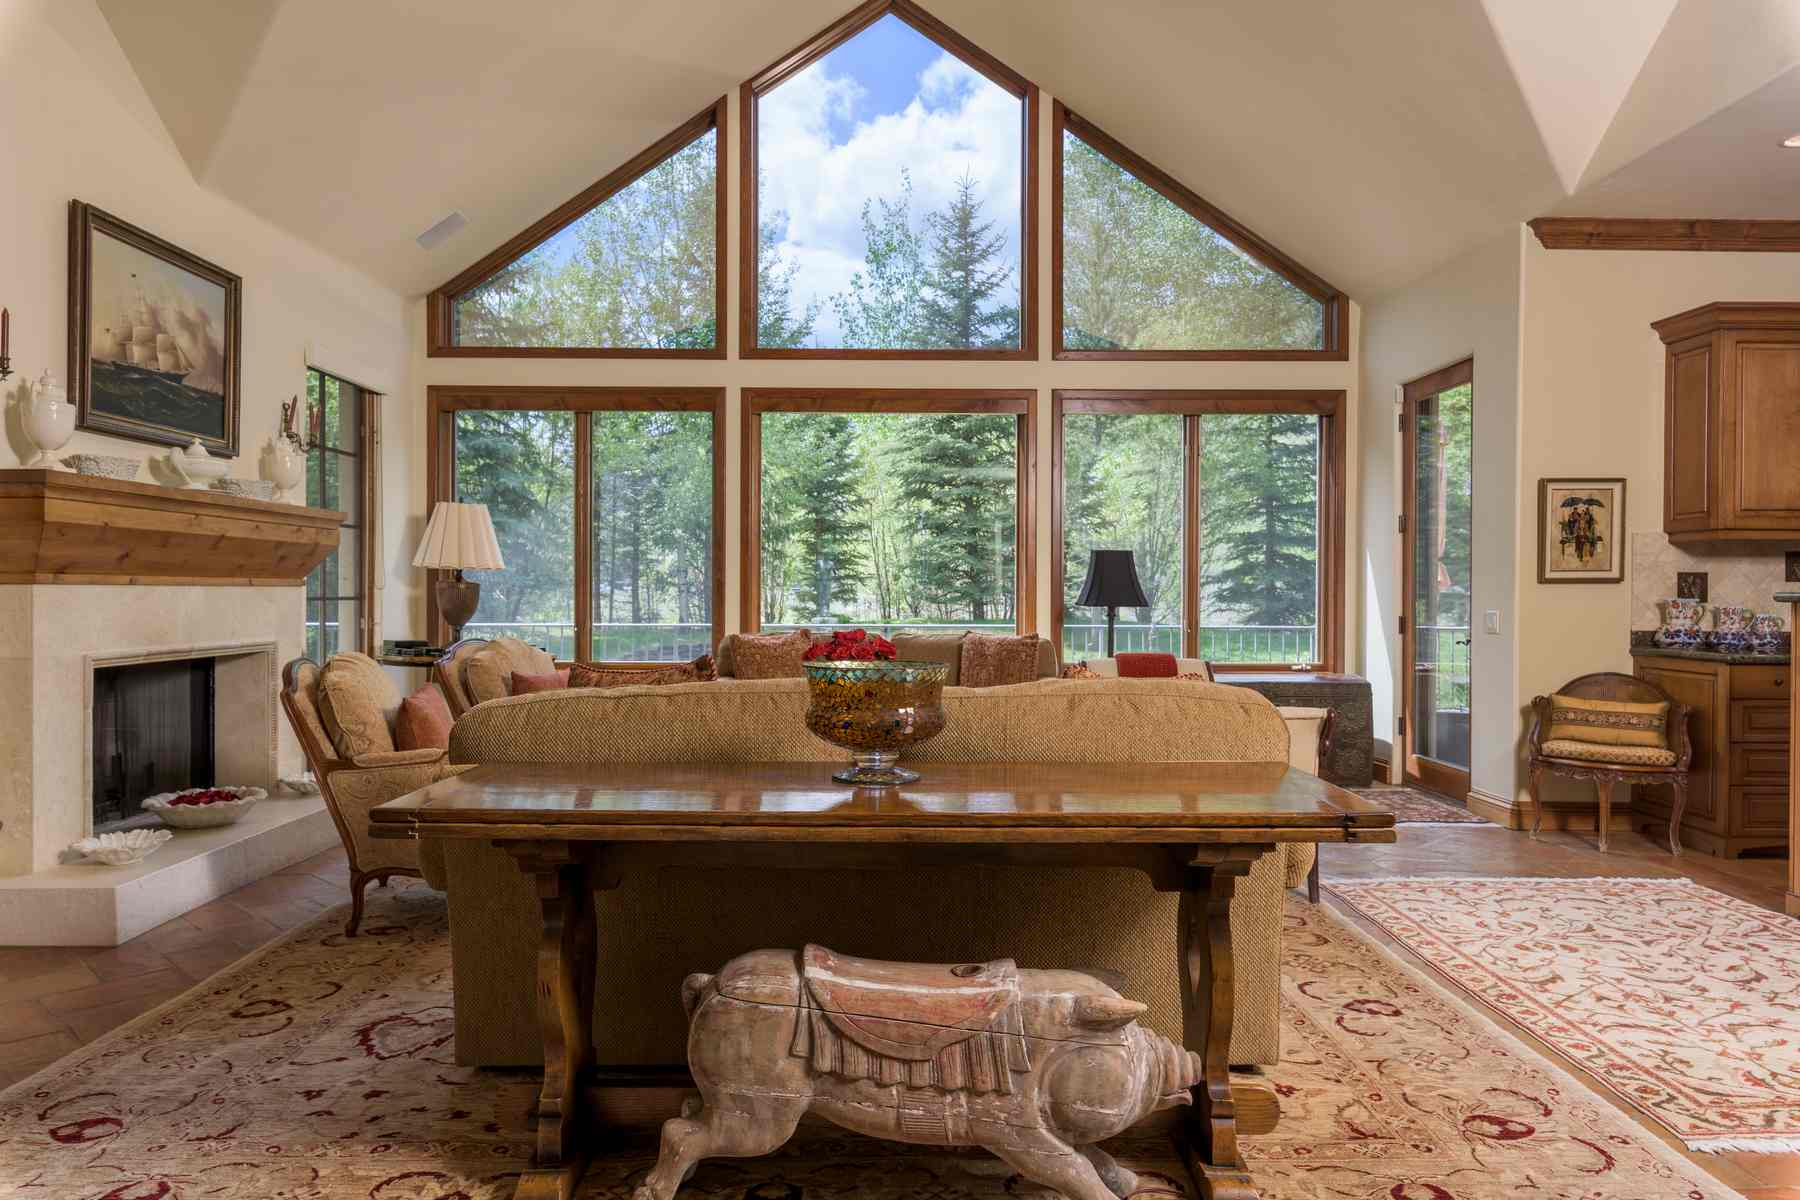 Maison unifamiliale pour l Vente à Rarely Available Estate Caliber Home 1100 W Canyon Run Blvd. Warm Springs, Ketchum, Idaho, 83340 États-Unis